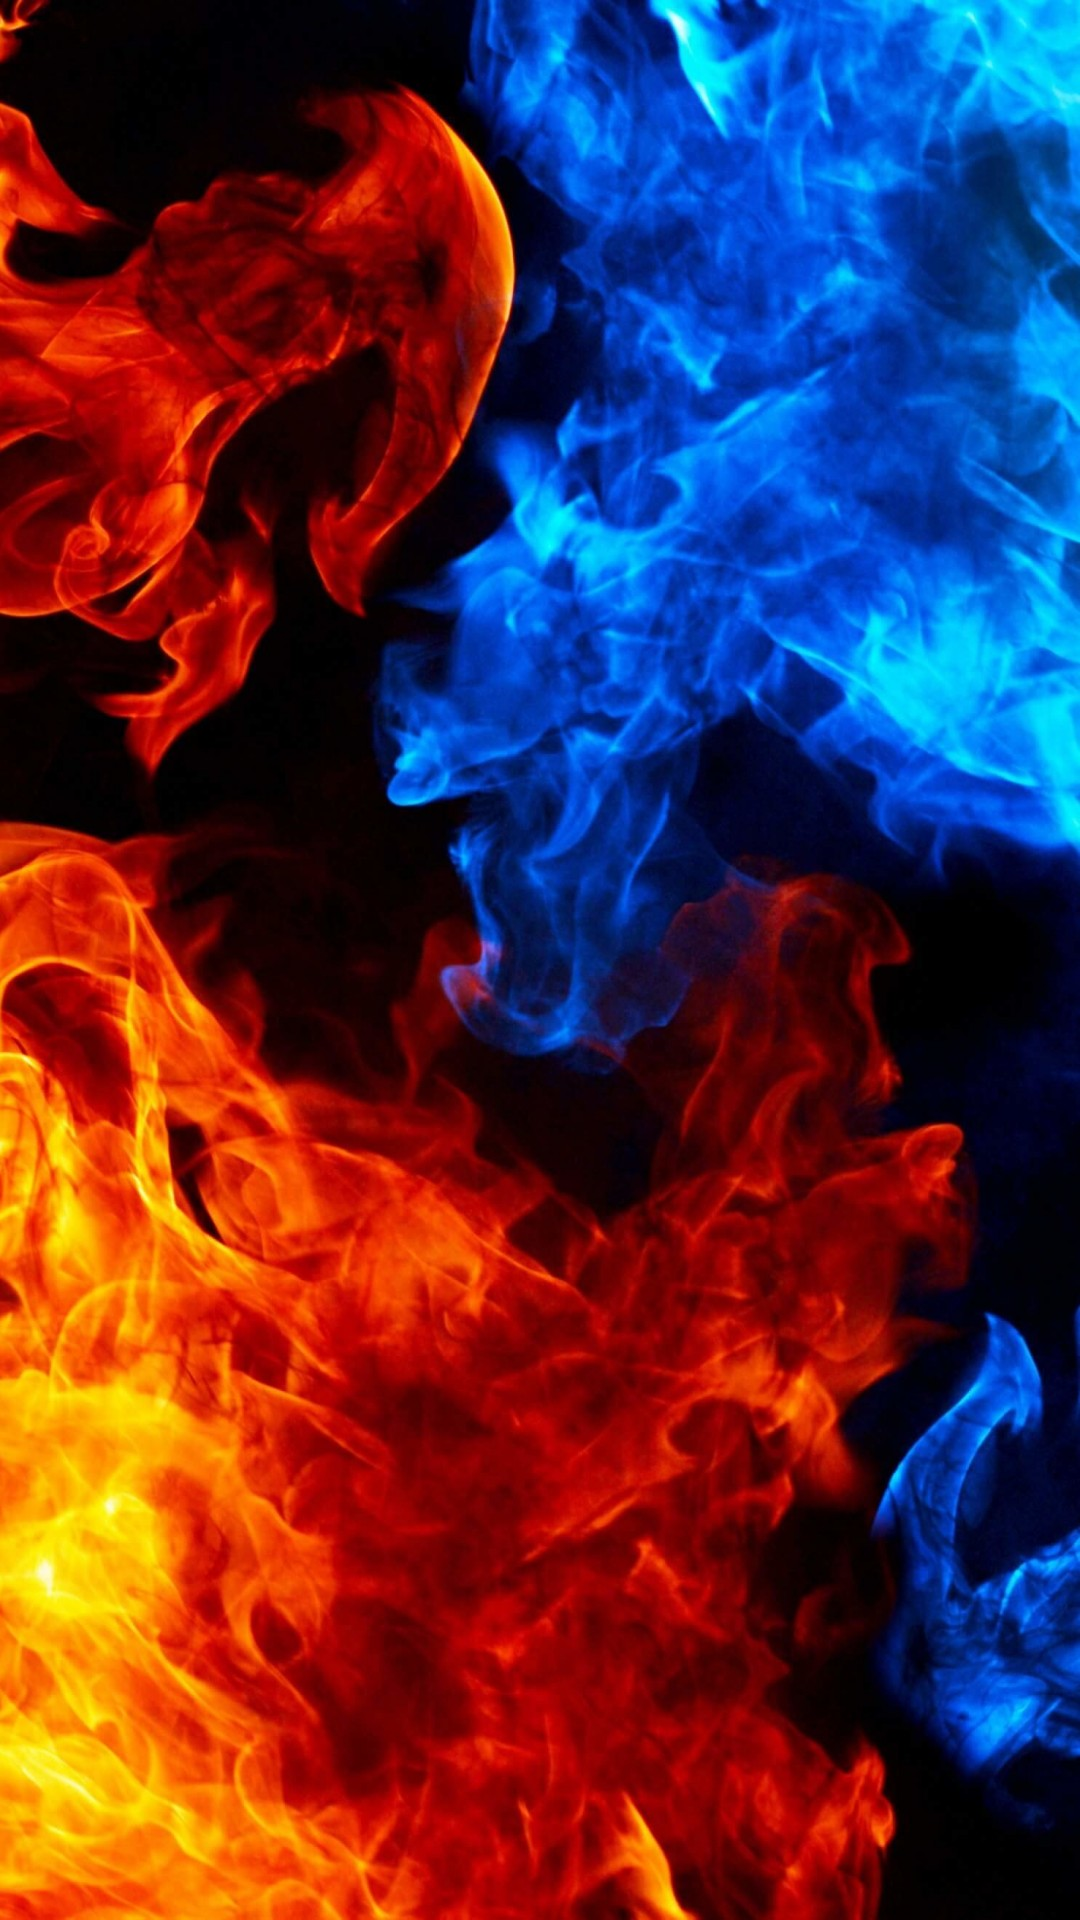 Blue And Red Fire Wallpaper for SAMSUNG Galaxy S5